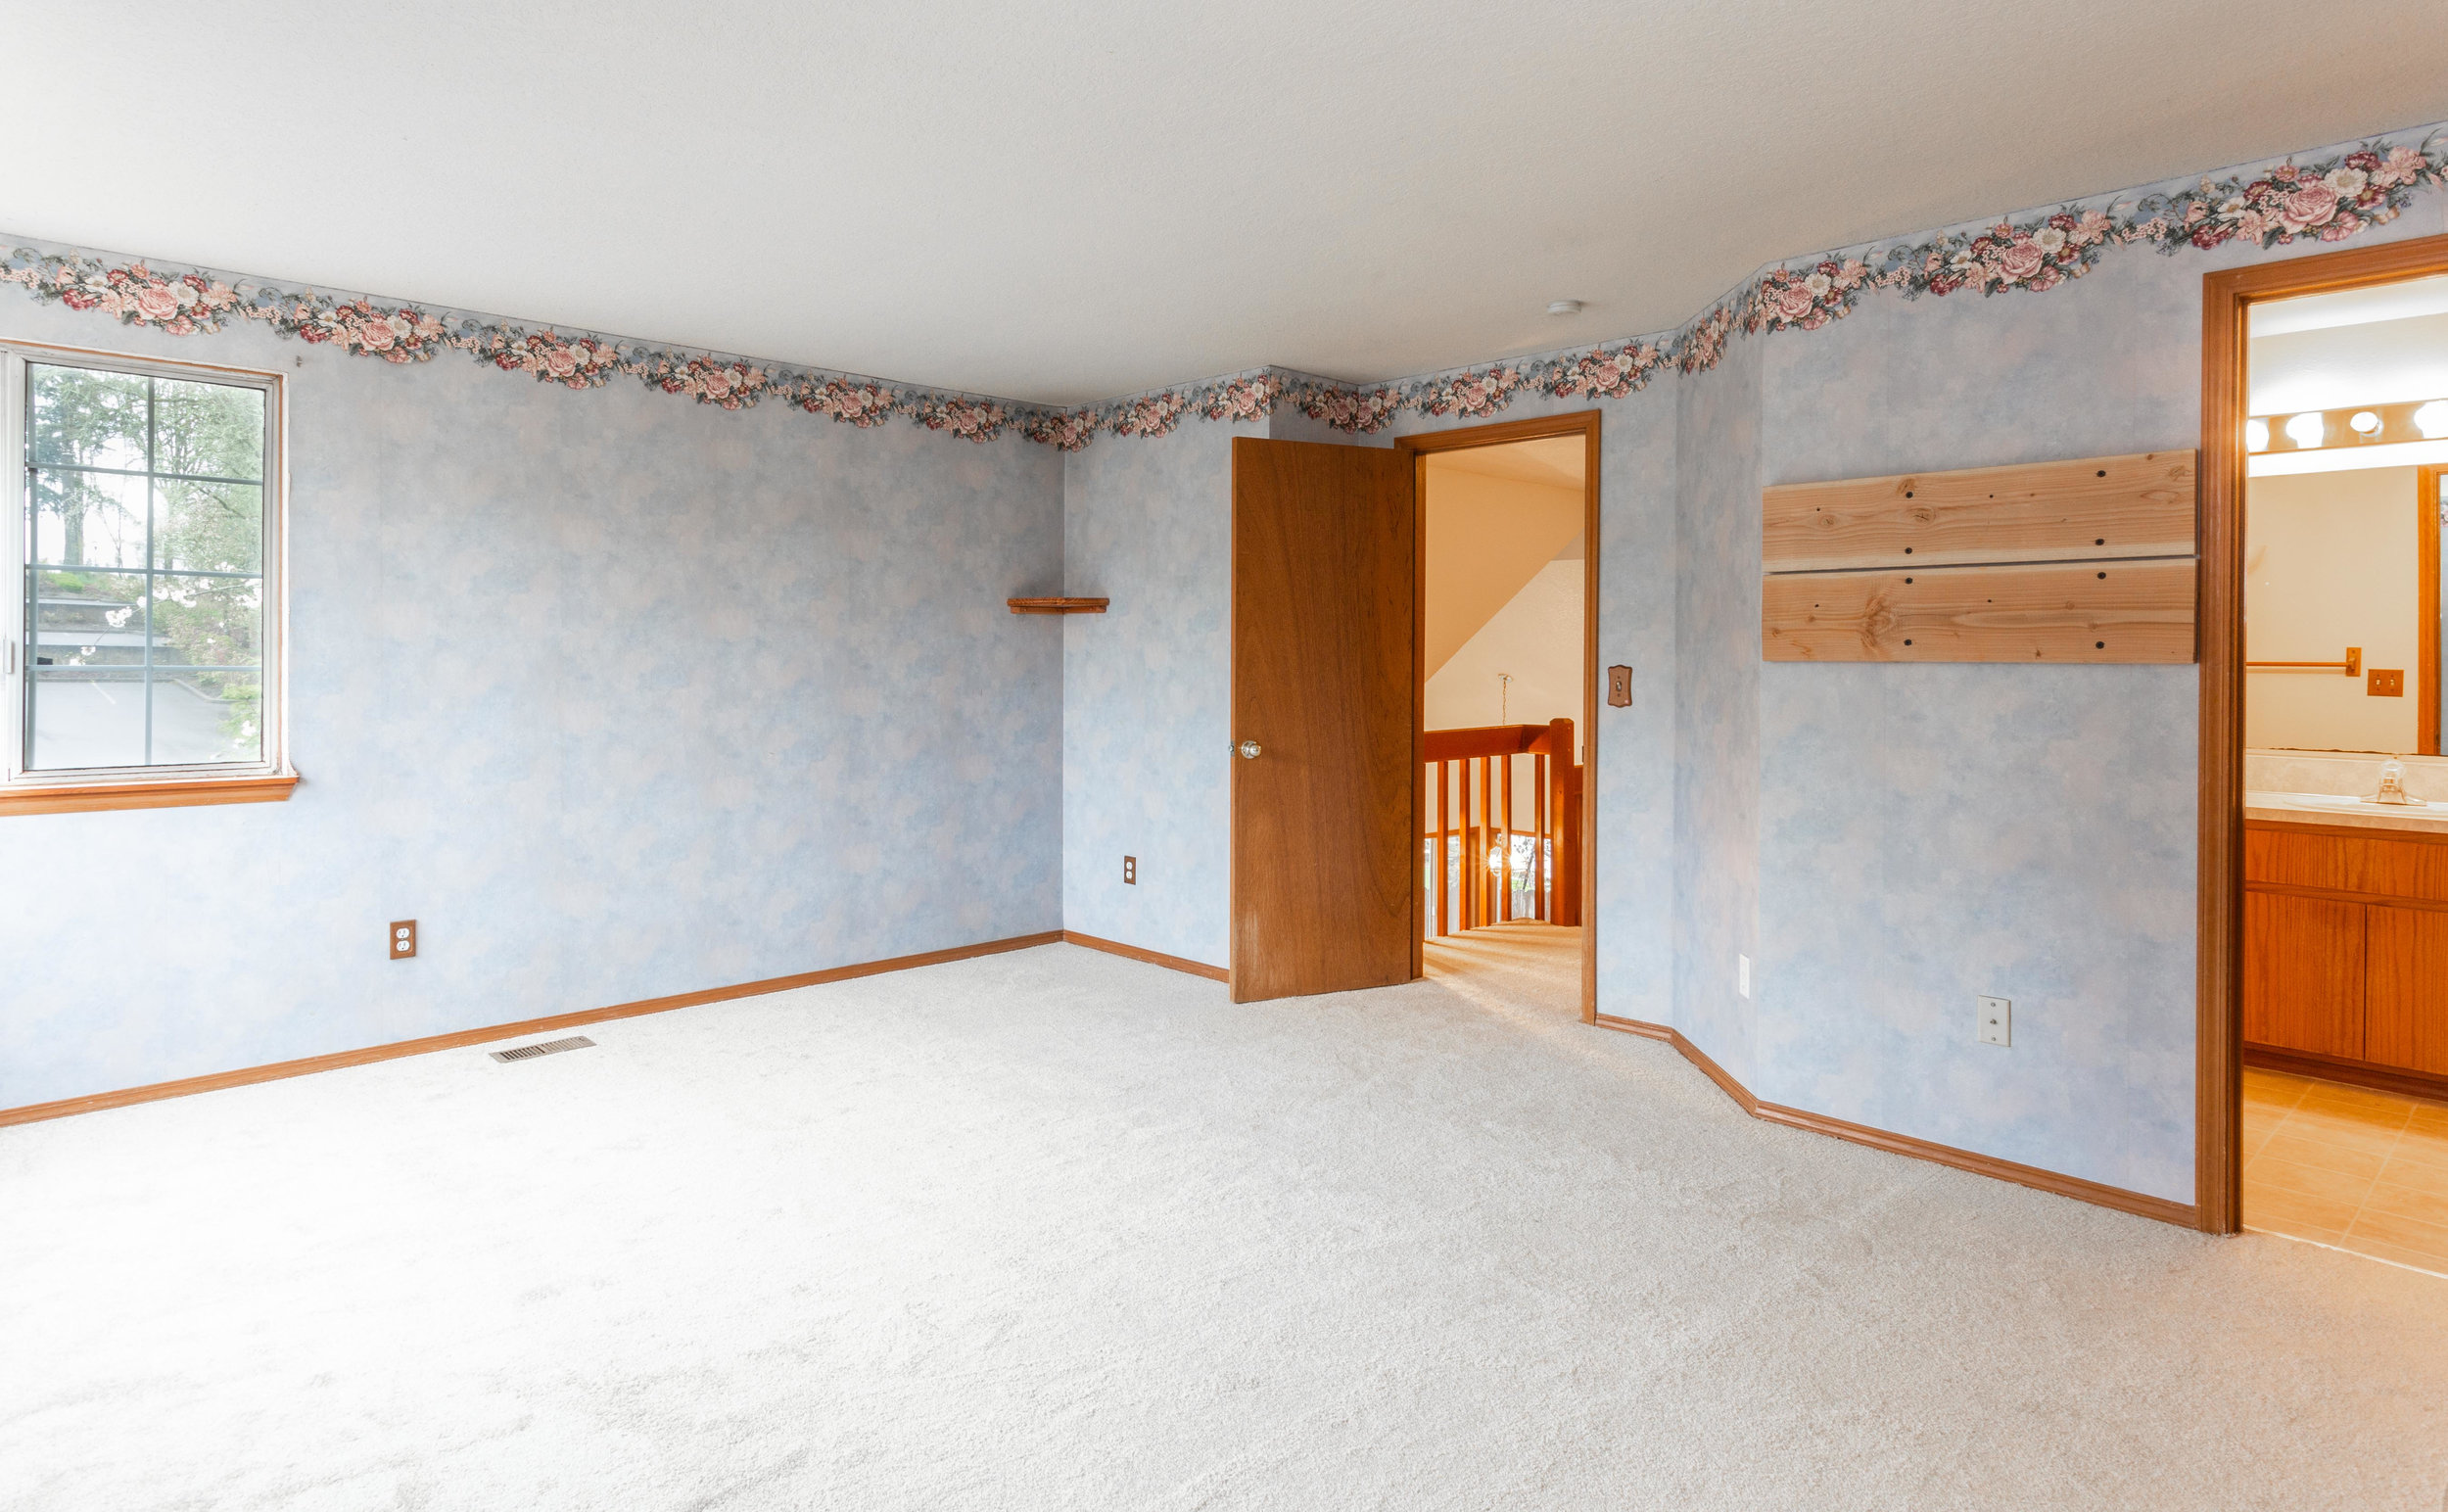 """Okay, so you may not love the wallpaper in the master suite, but you'll want to redecorate this huge 17'x13'7"""" room to be your own private retreat anyway, right?"""